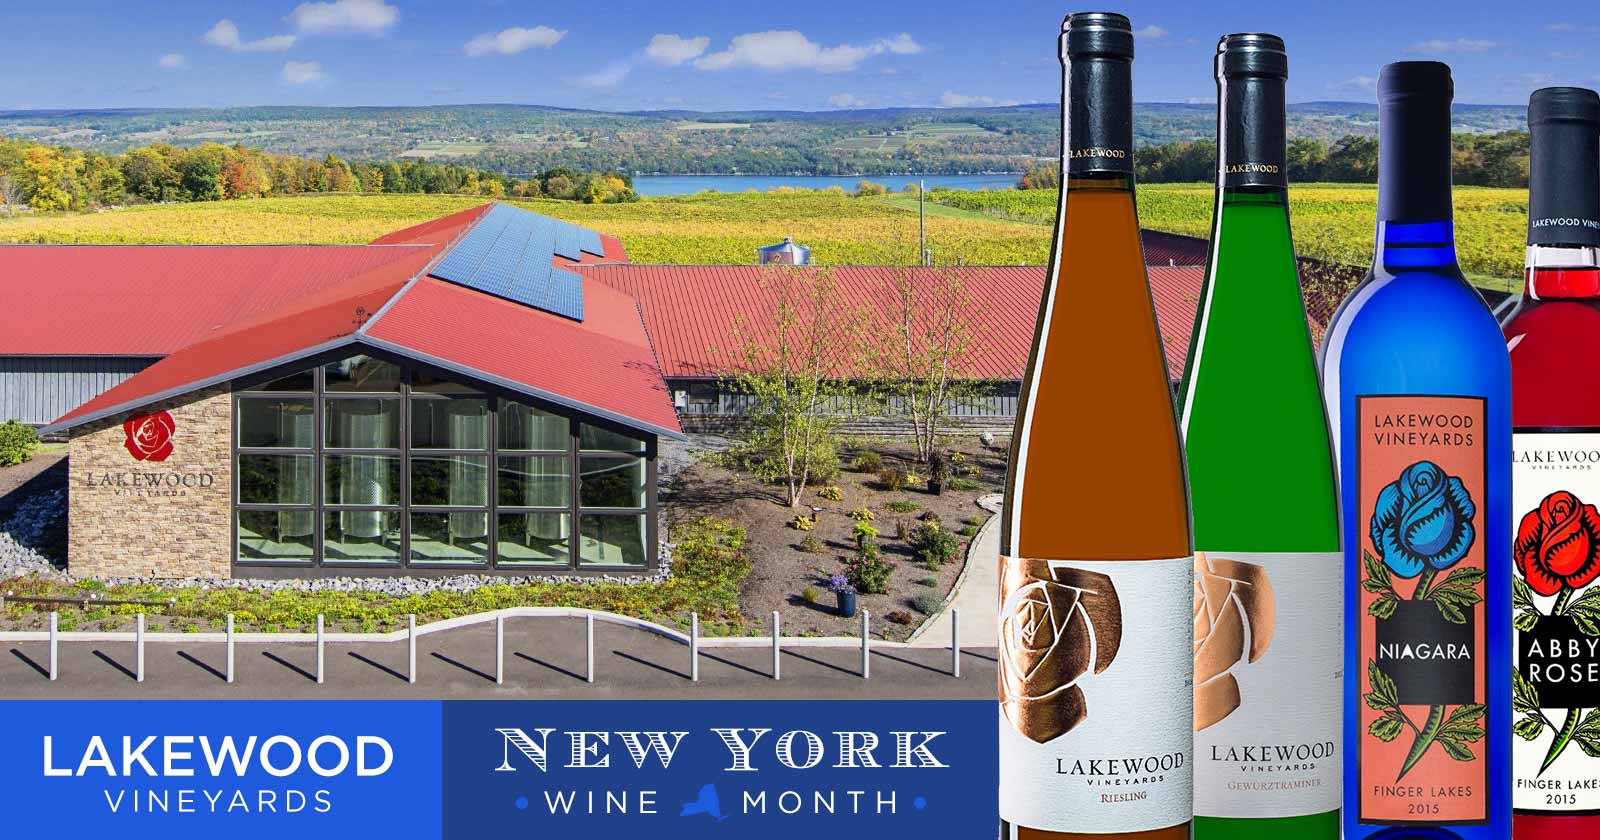 Celebrating Lakewood Vineyards as part of New York State Wine Month